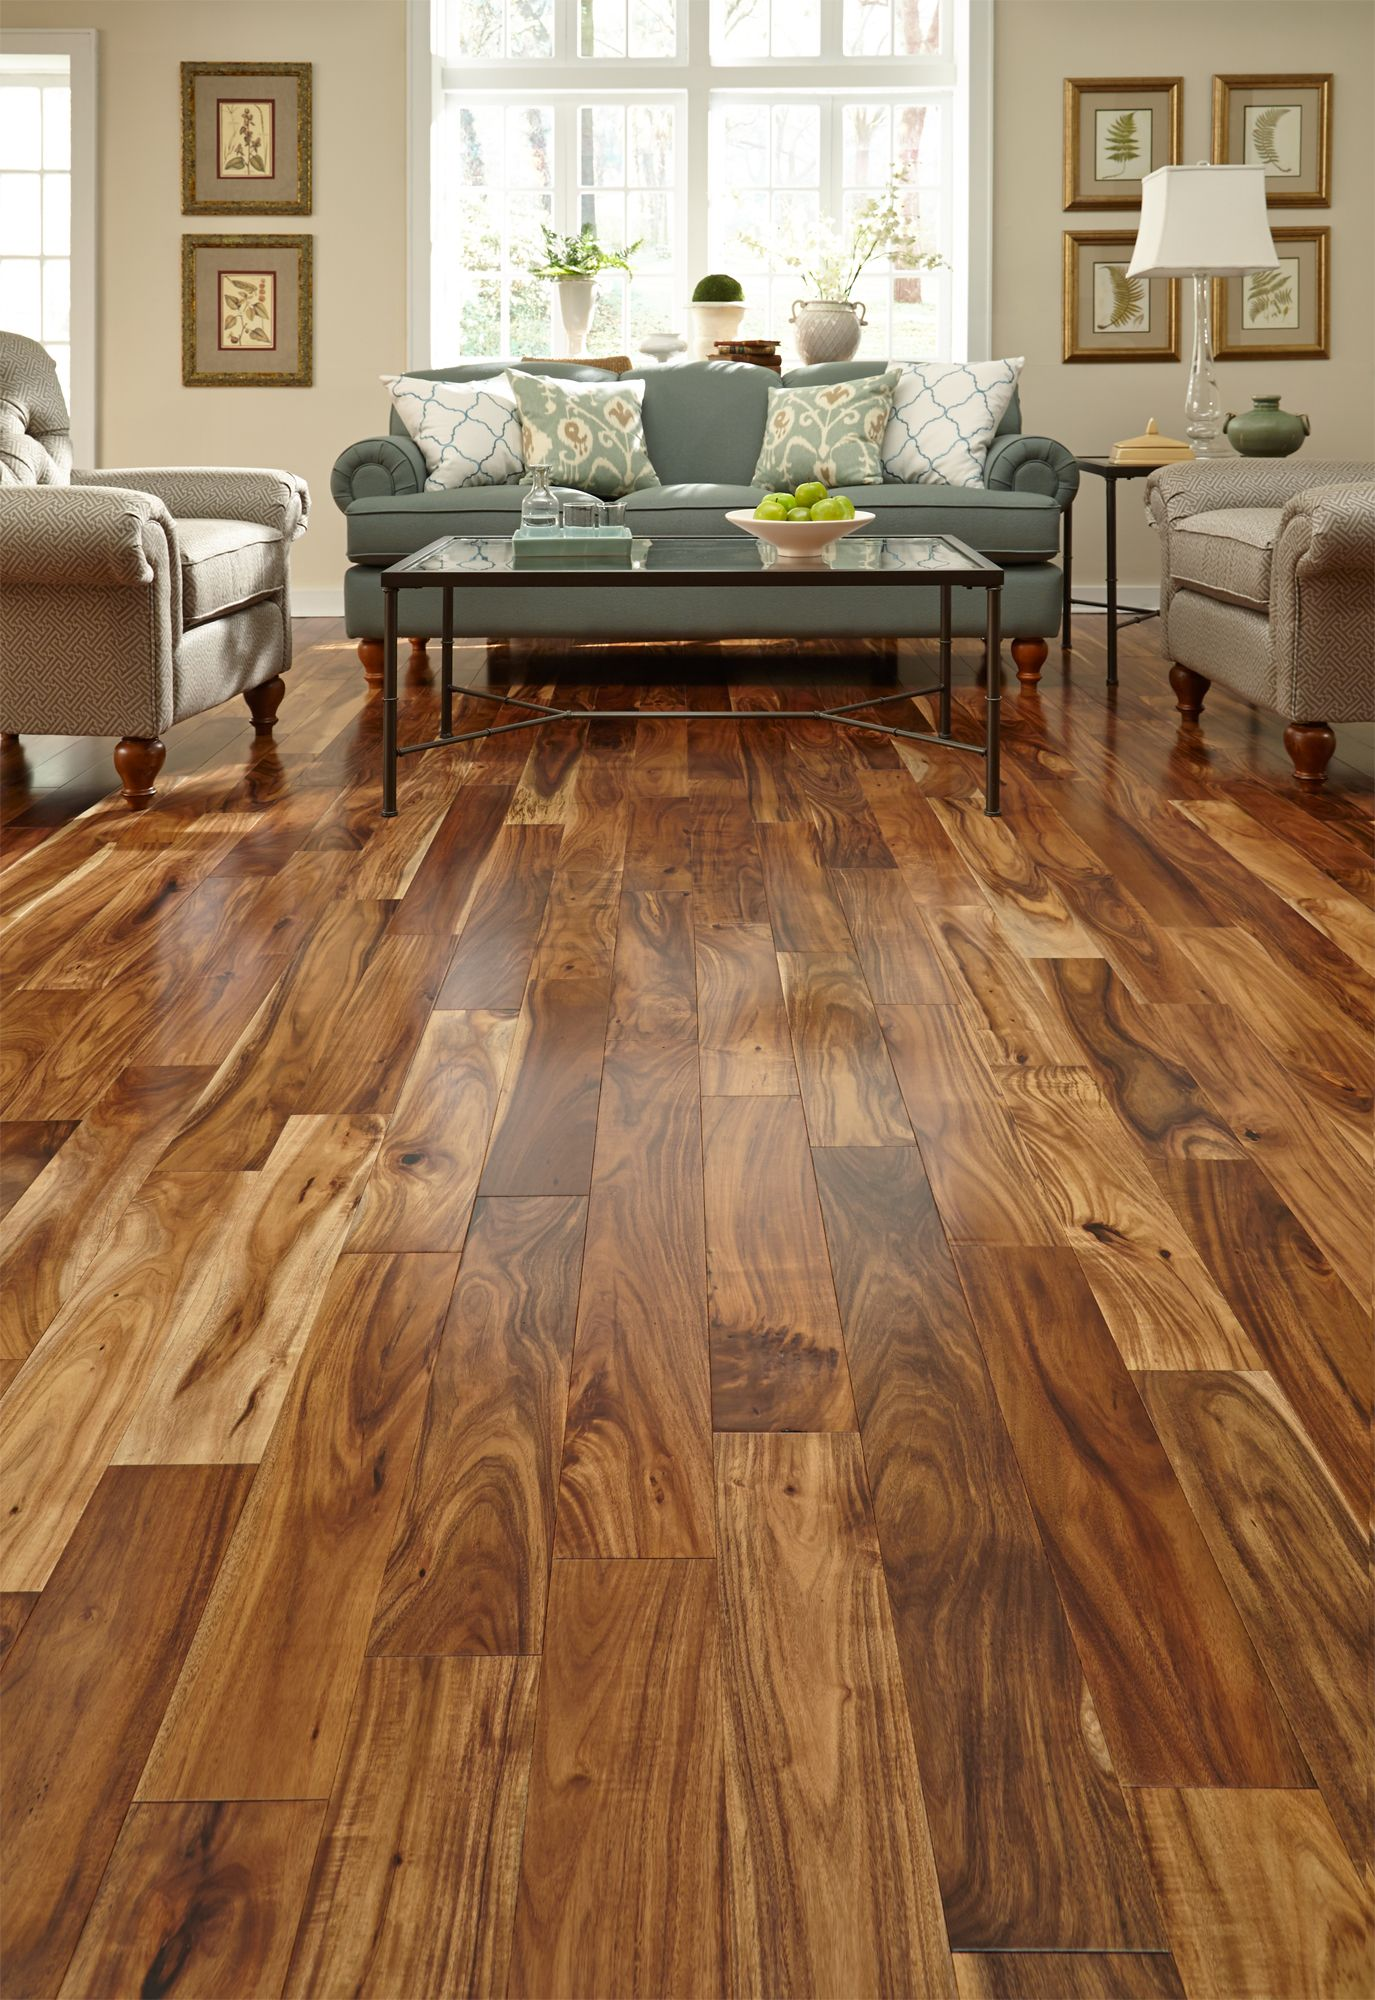 flooring img experience home selections post long ryan floors construction homes milan new choices